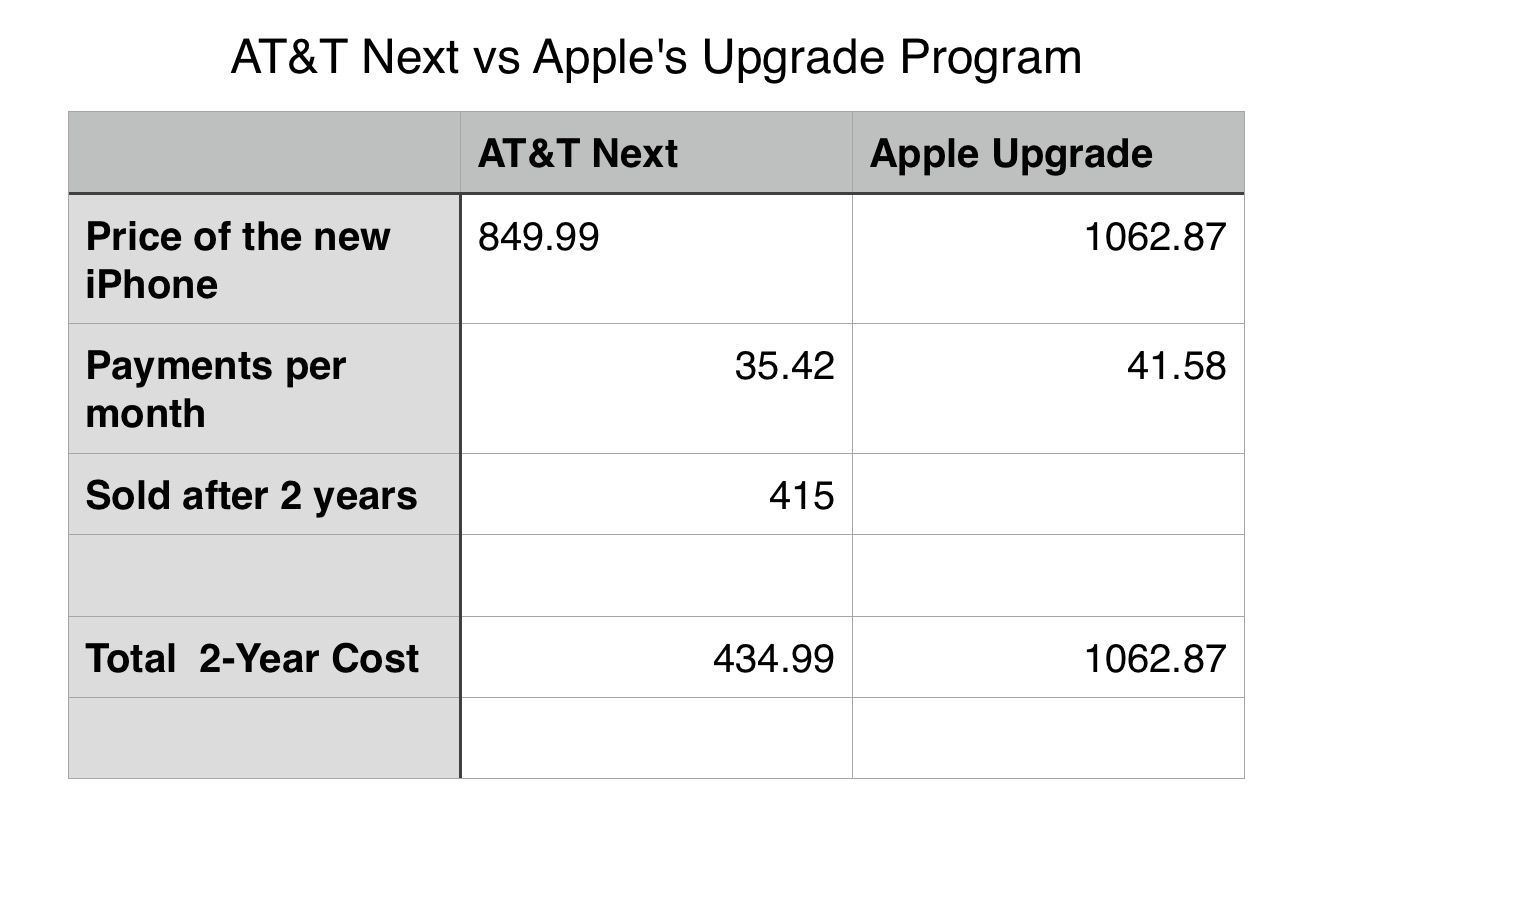 Comparing AT&T Next with the Apple Upgrade Program